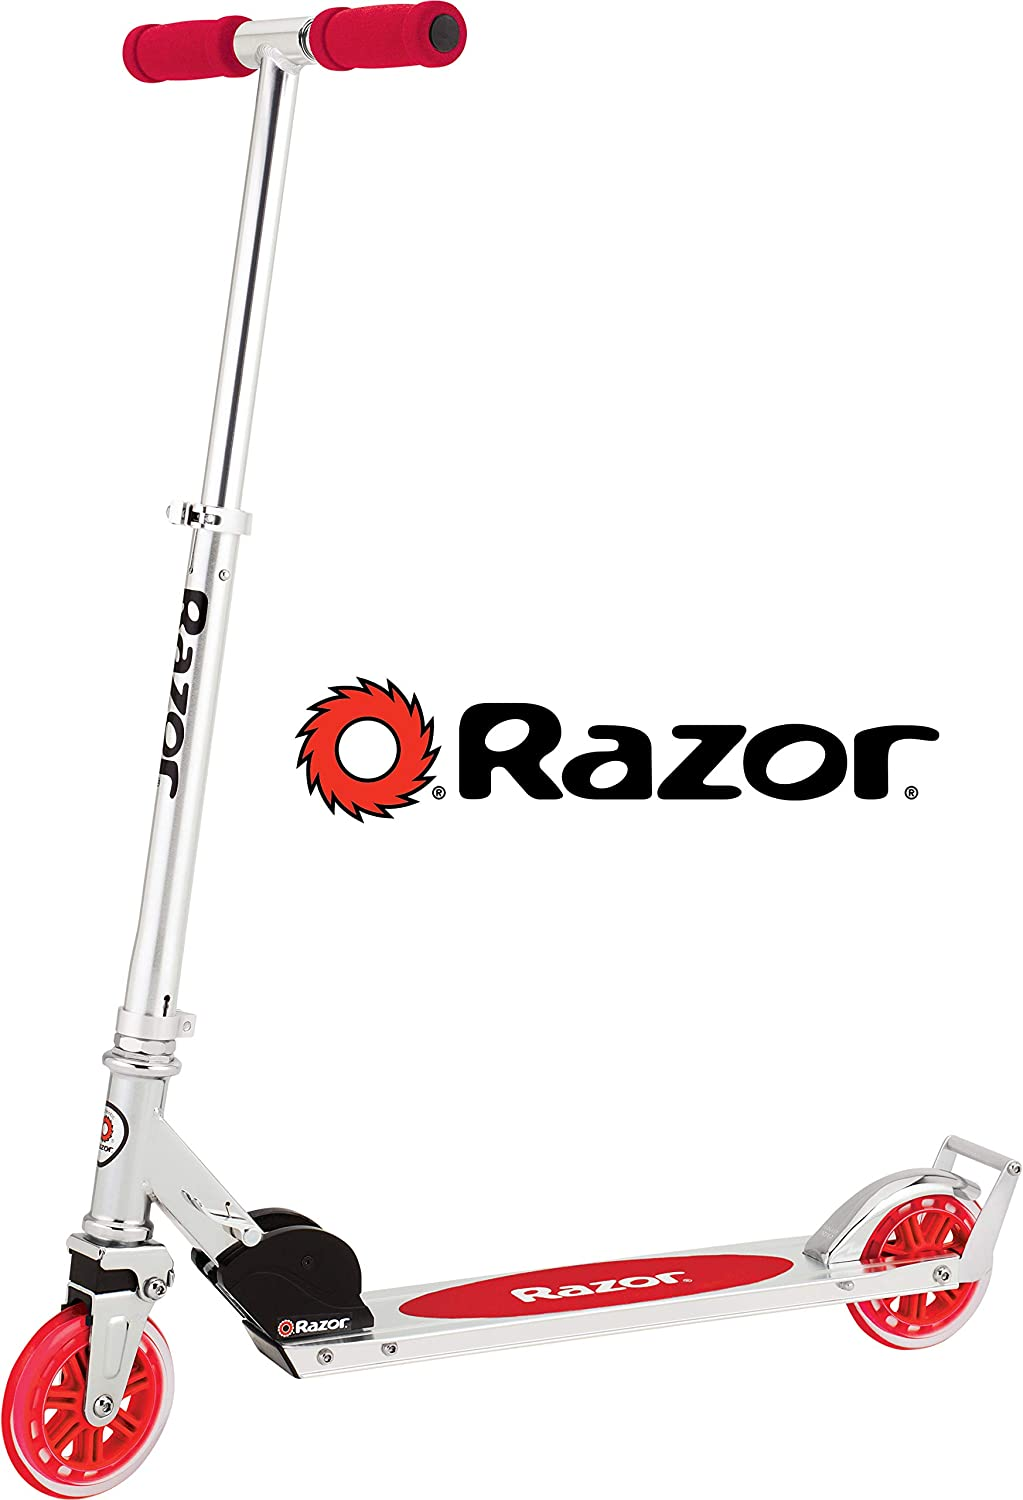 Razor A3 Kick Scooter / US